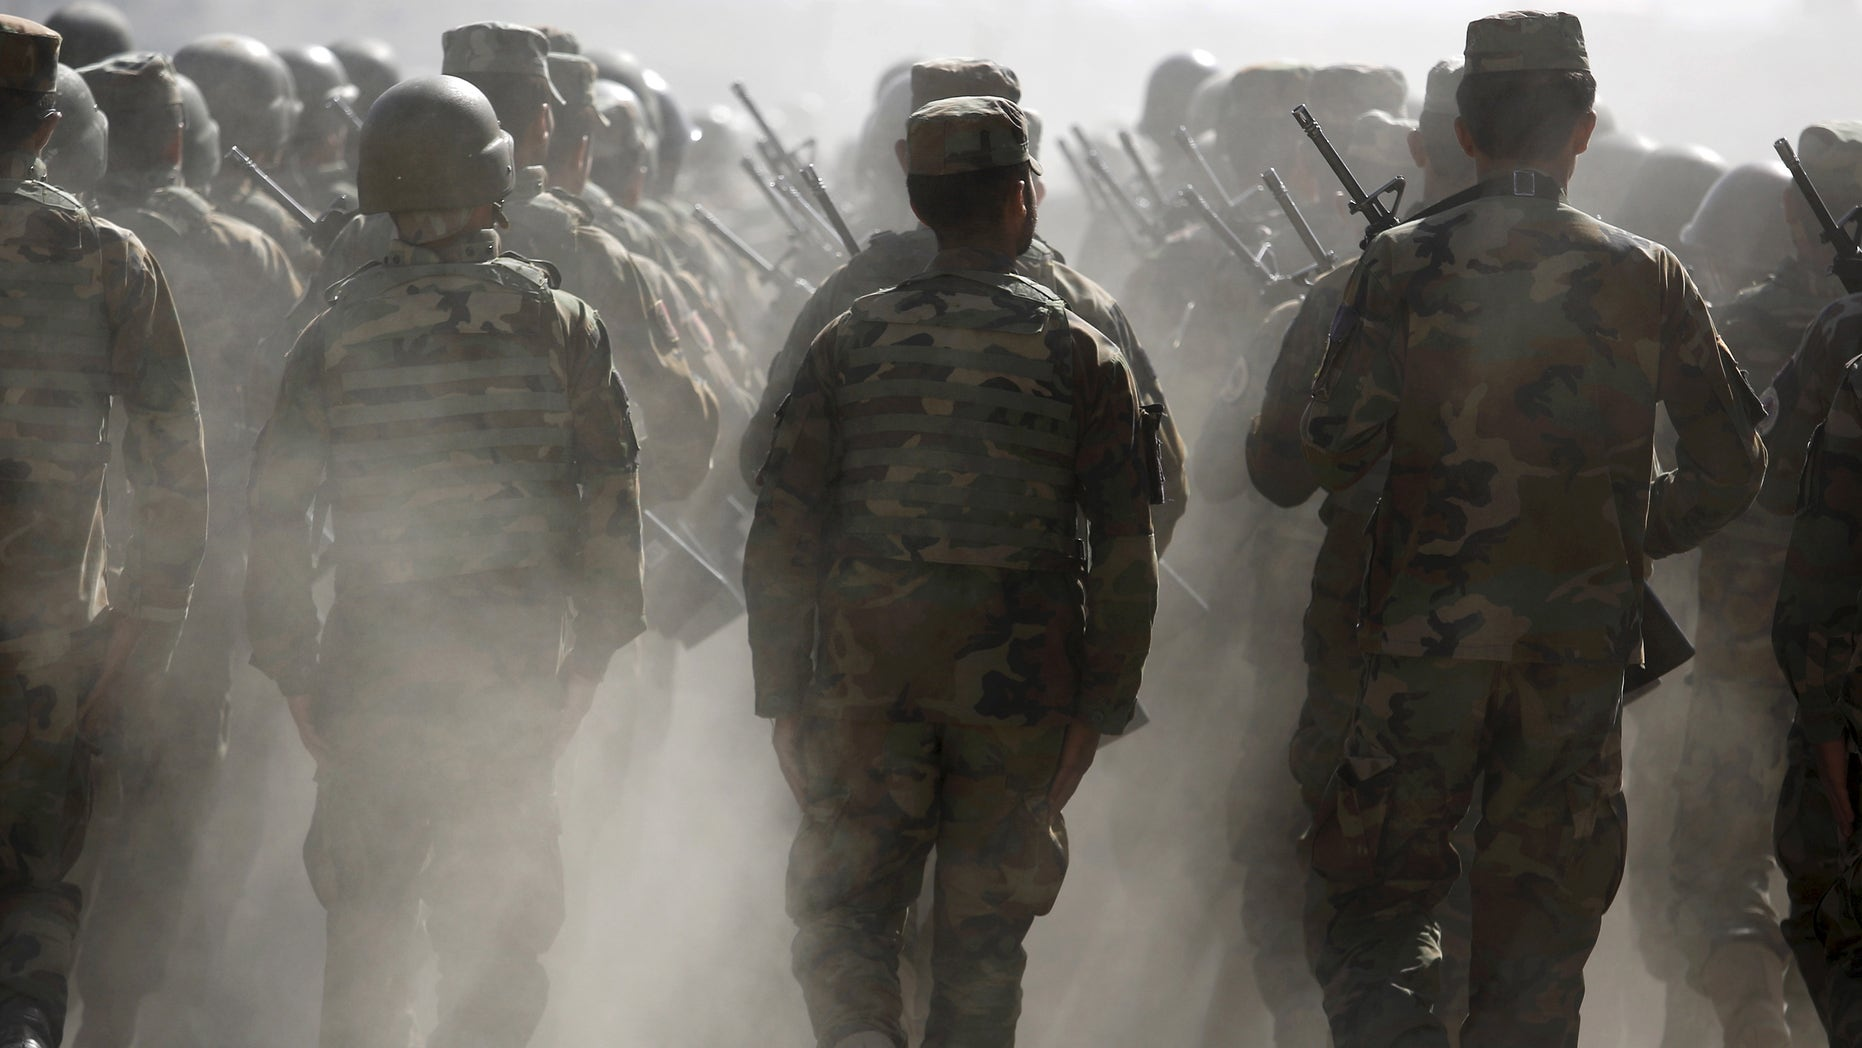 Afghan National Army officers march during a training exercise in Kabul.